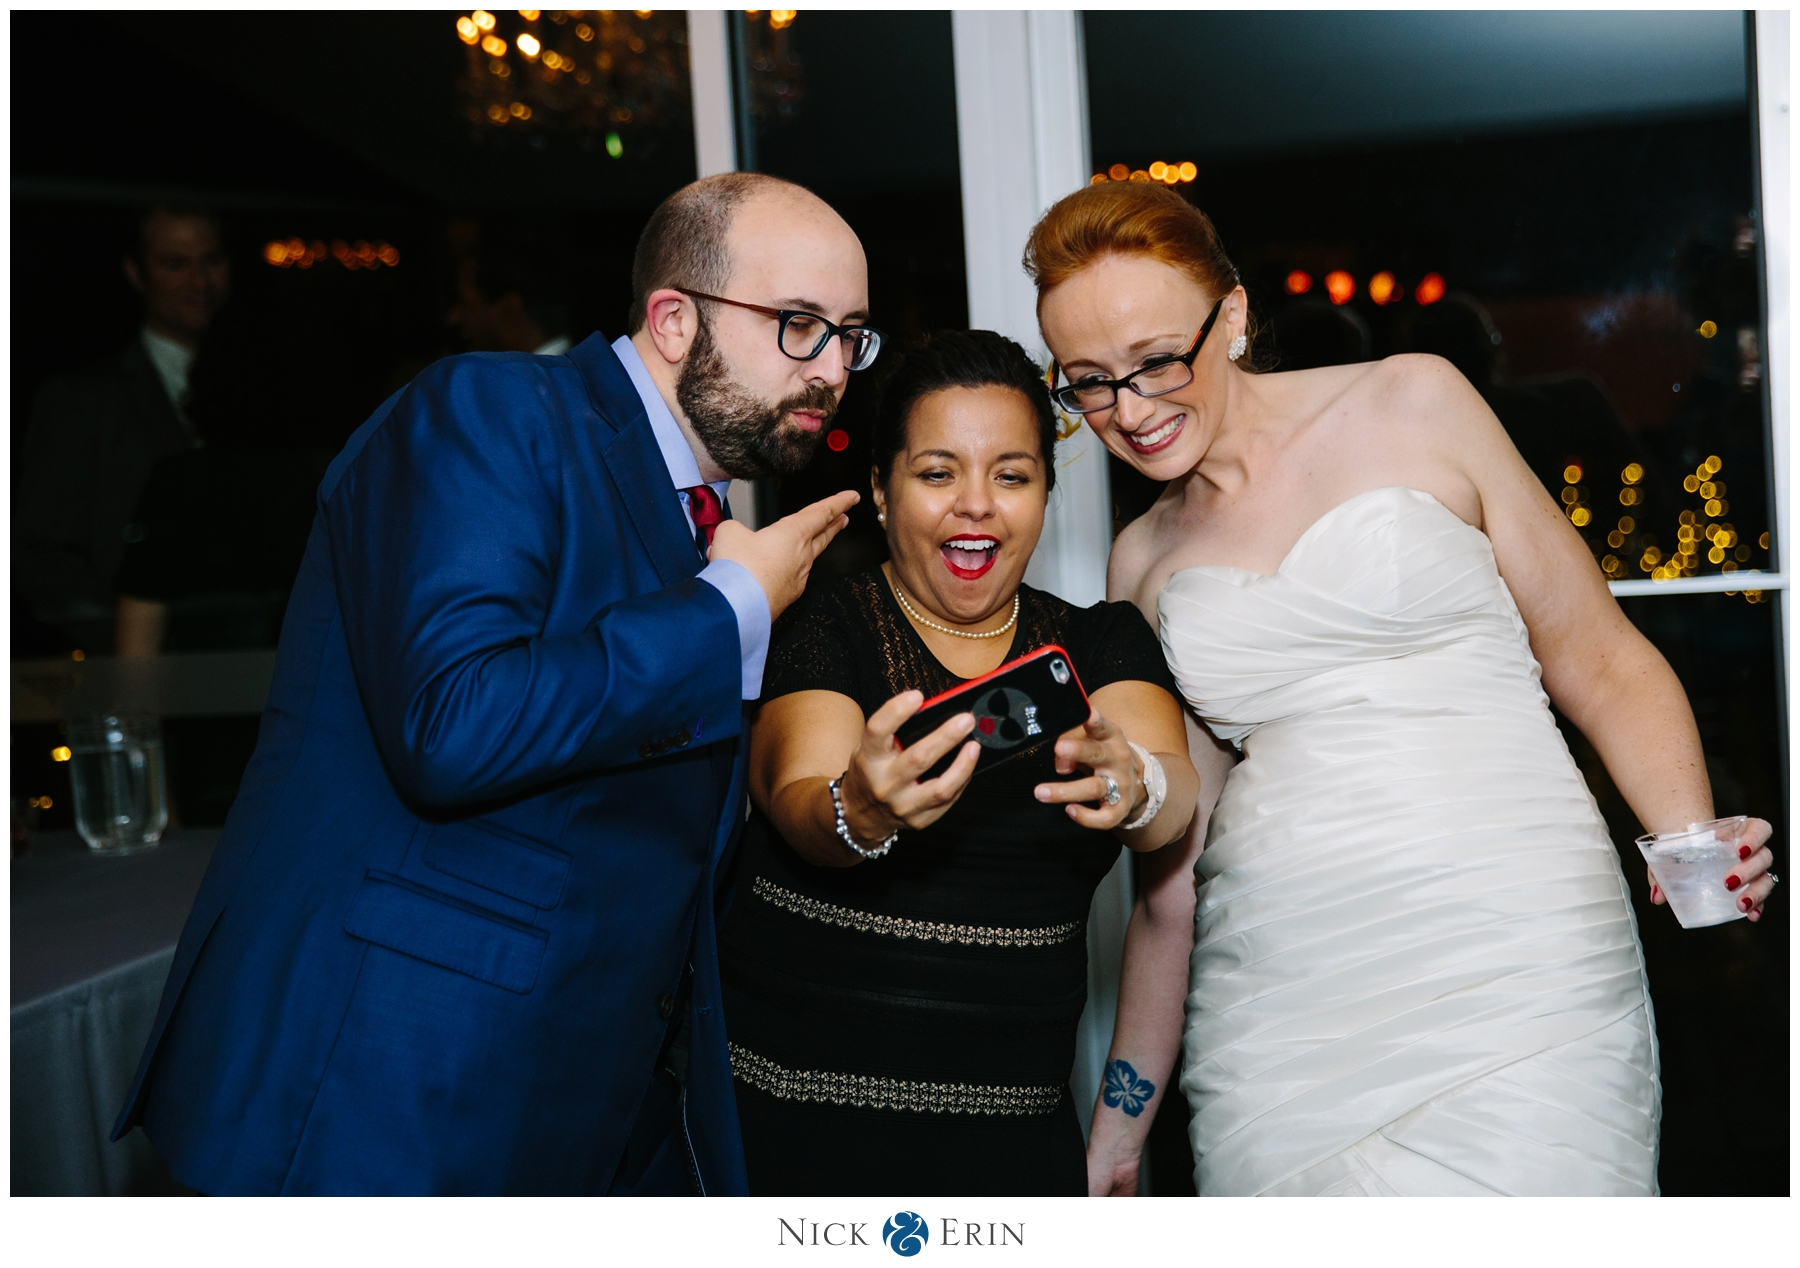 donner_photography_washington-dc-wedding_alanna-josh_0050